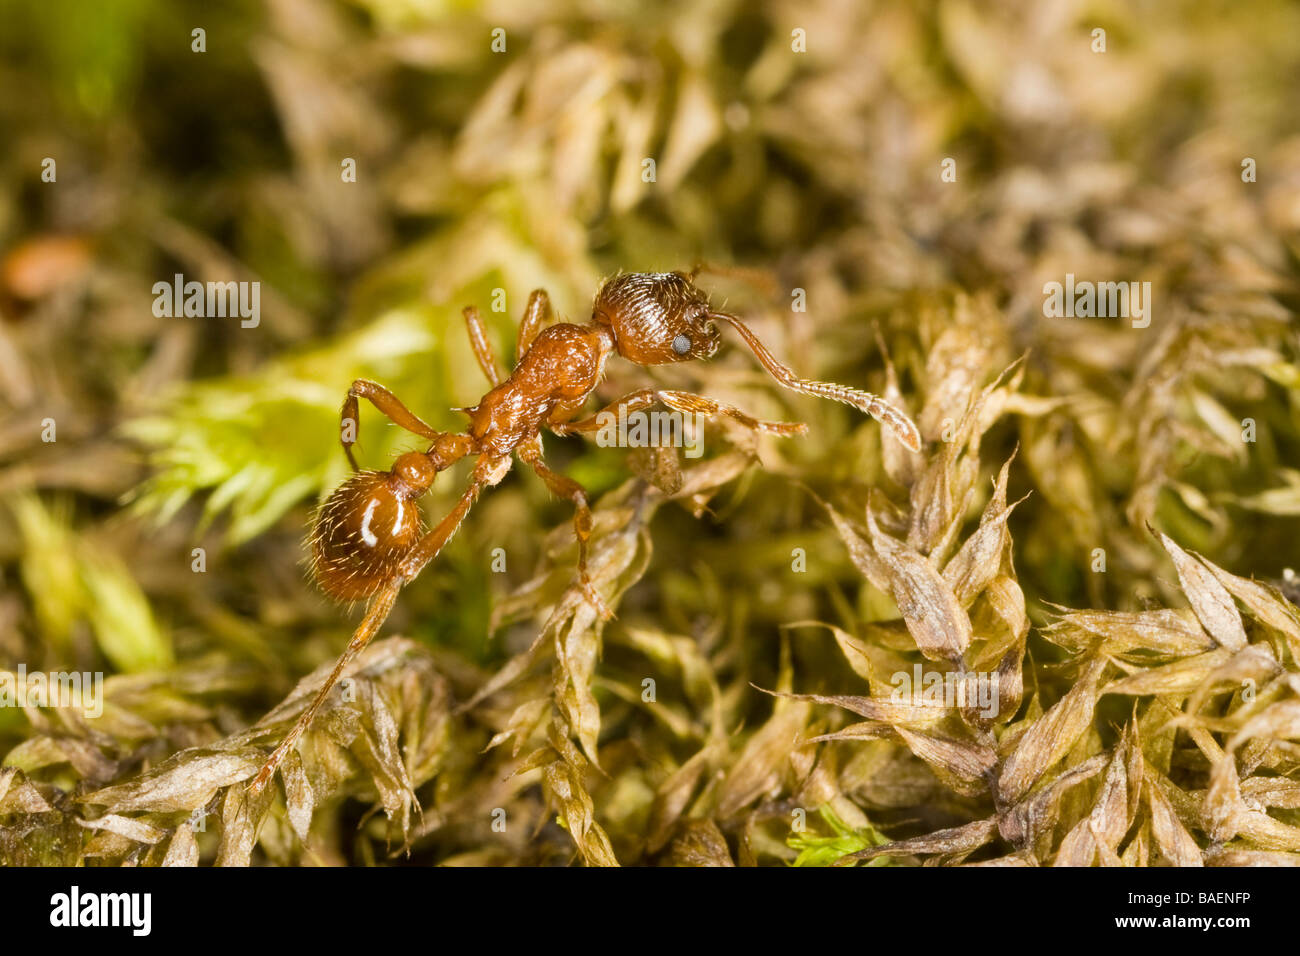 Red ant (Formicidae: Myrmica rubra), with a parasitic mite on its hind leg, walking on moss - Stock Image